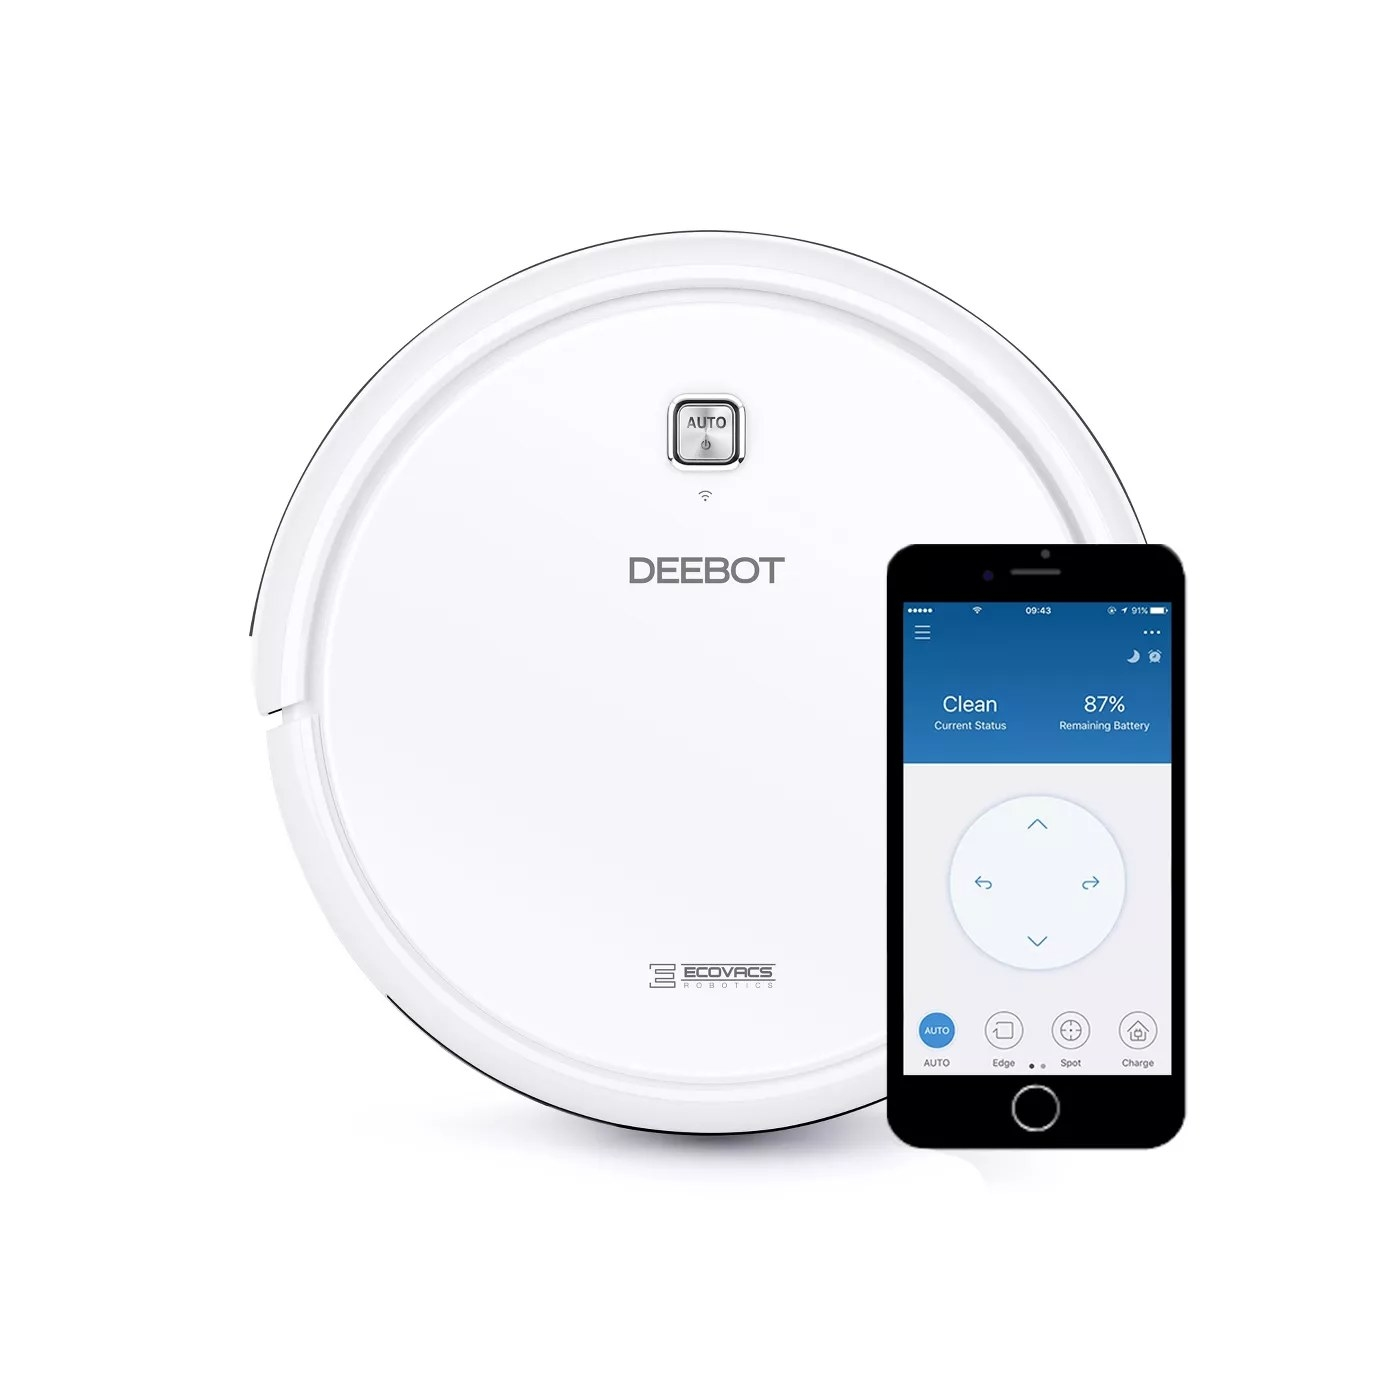 The Ecovacs Deebot robot vacuum and its app